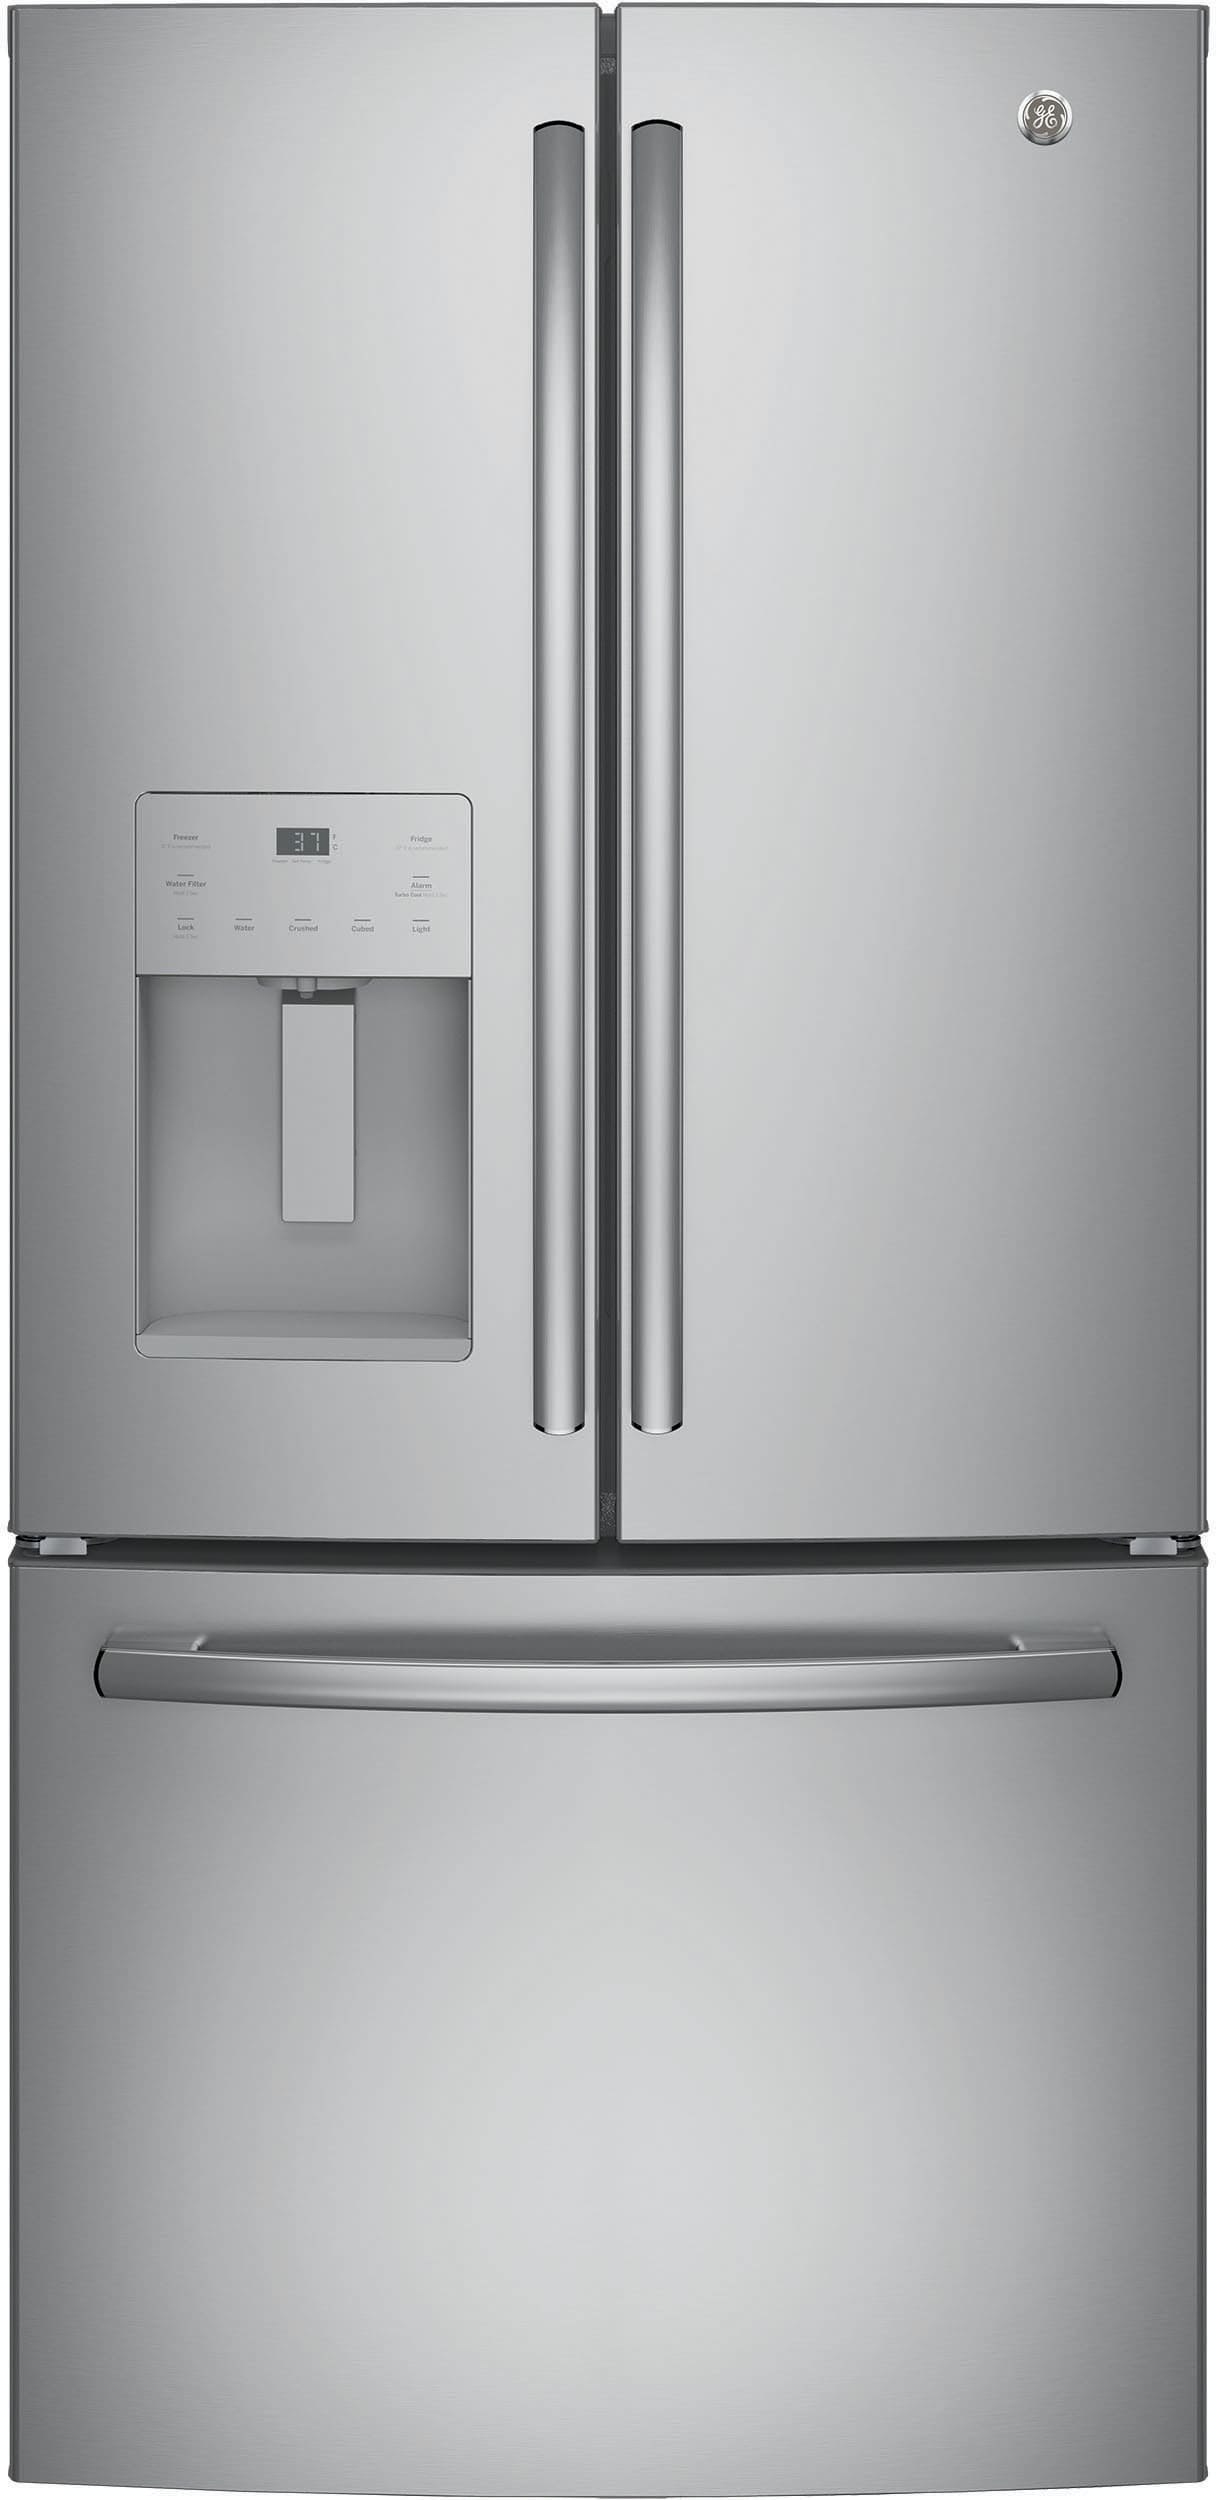 Ge Gfe24jskss 33 Inch French Door Refrigerator With Turbo